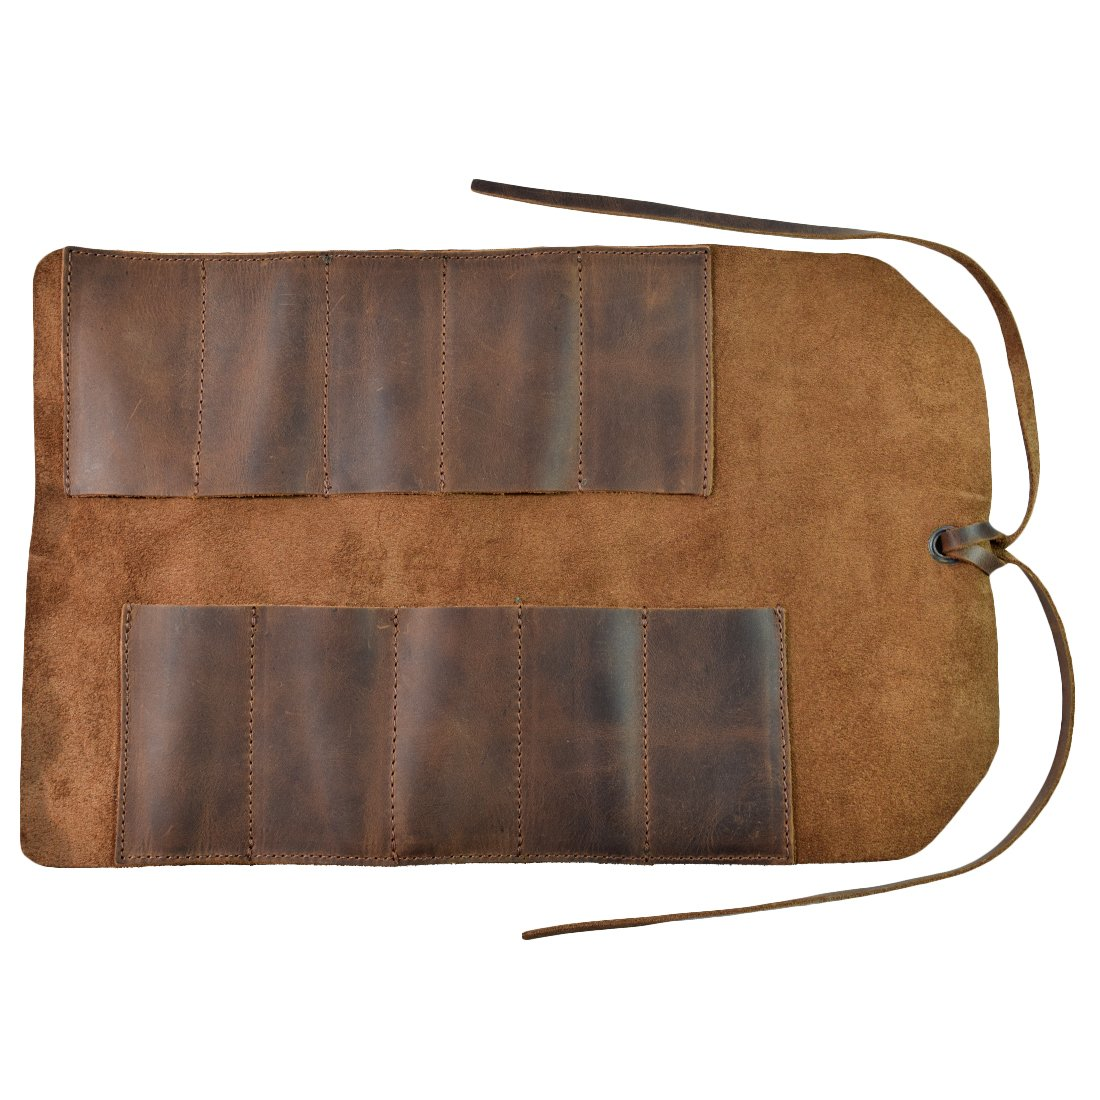 Rustic Leather Small Tool Roll Handmade by Hide & Drink :: Bourbon Brown by Hide & Drink (Image #3)